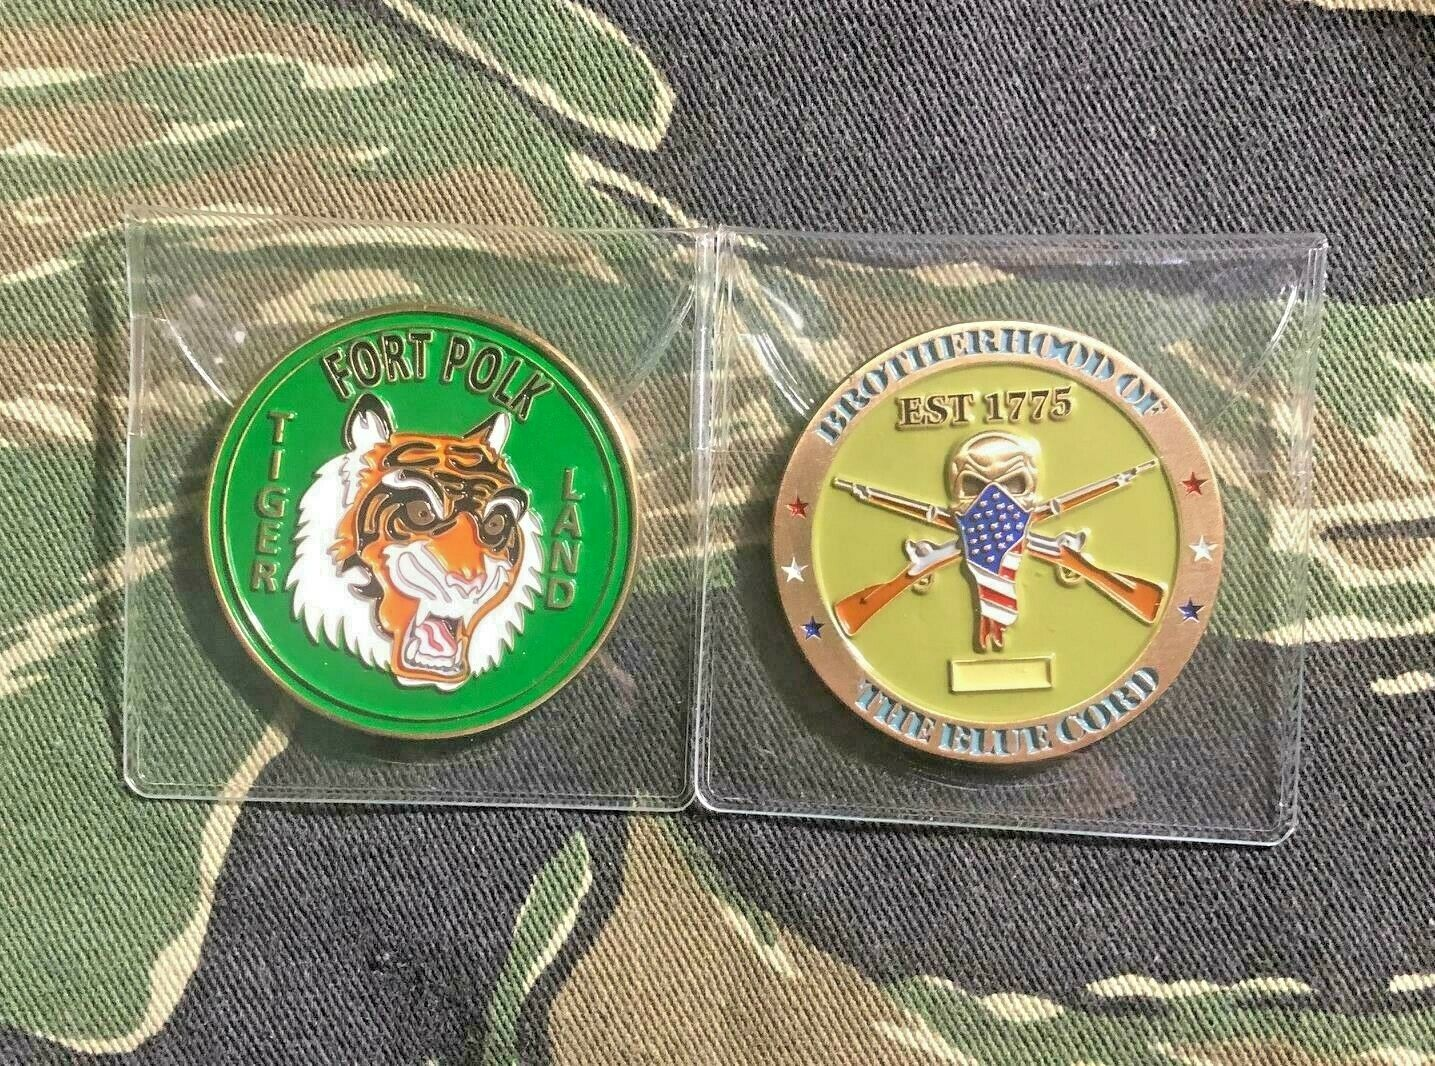 FORT POLK CHALLENGE COIN